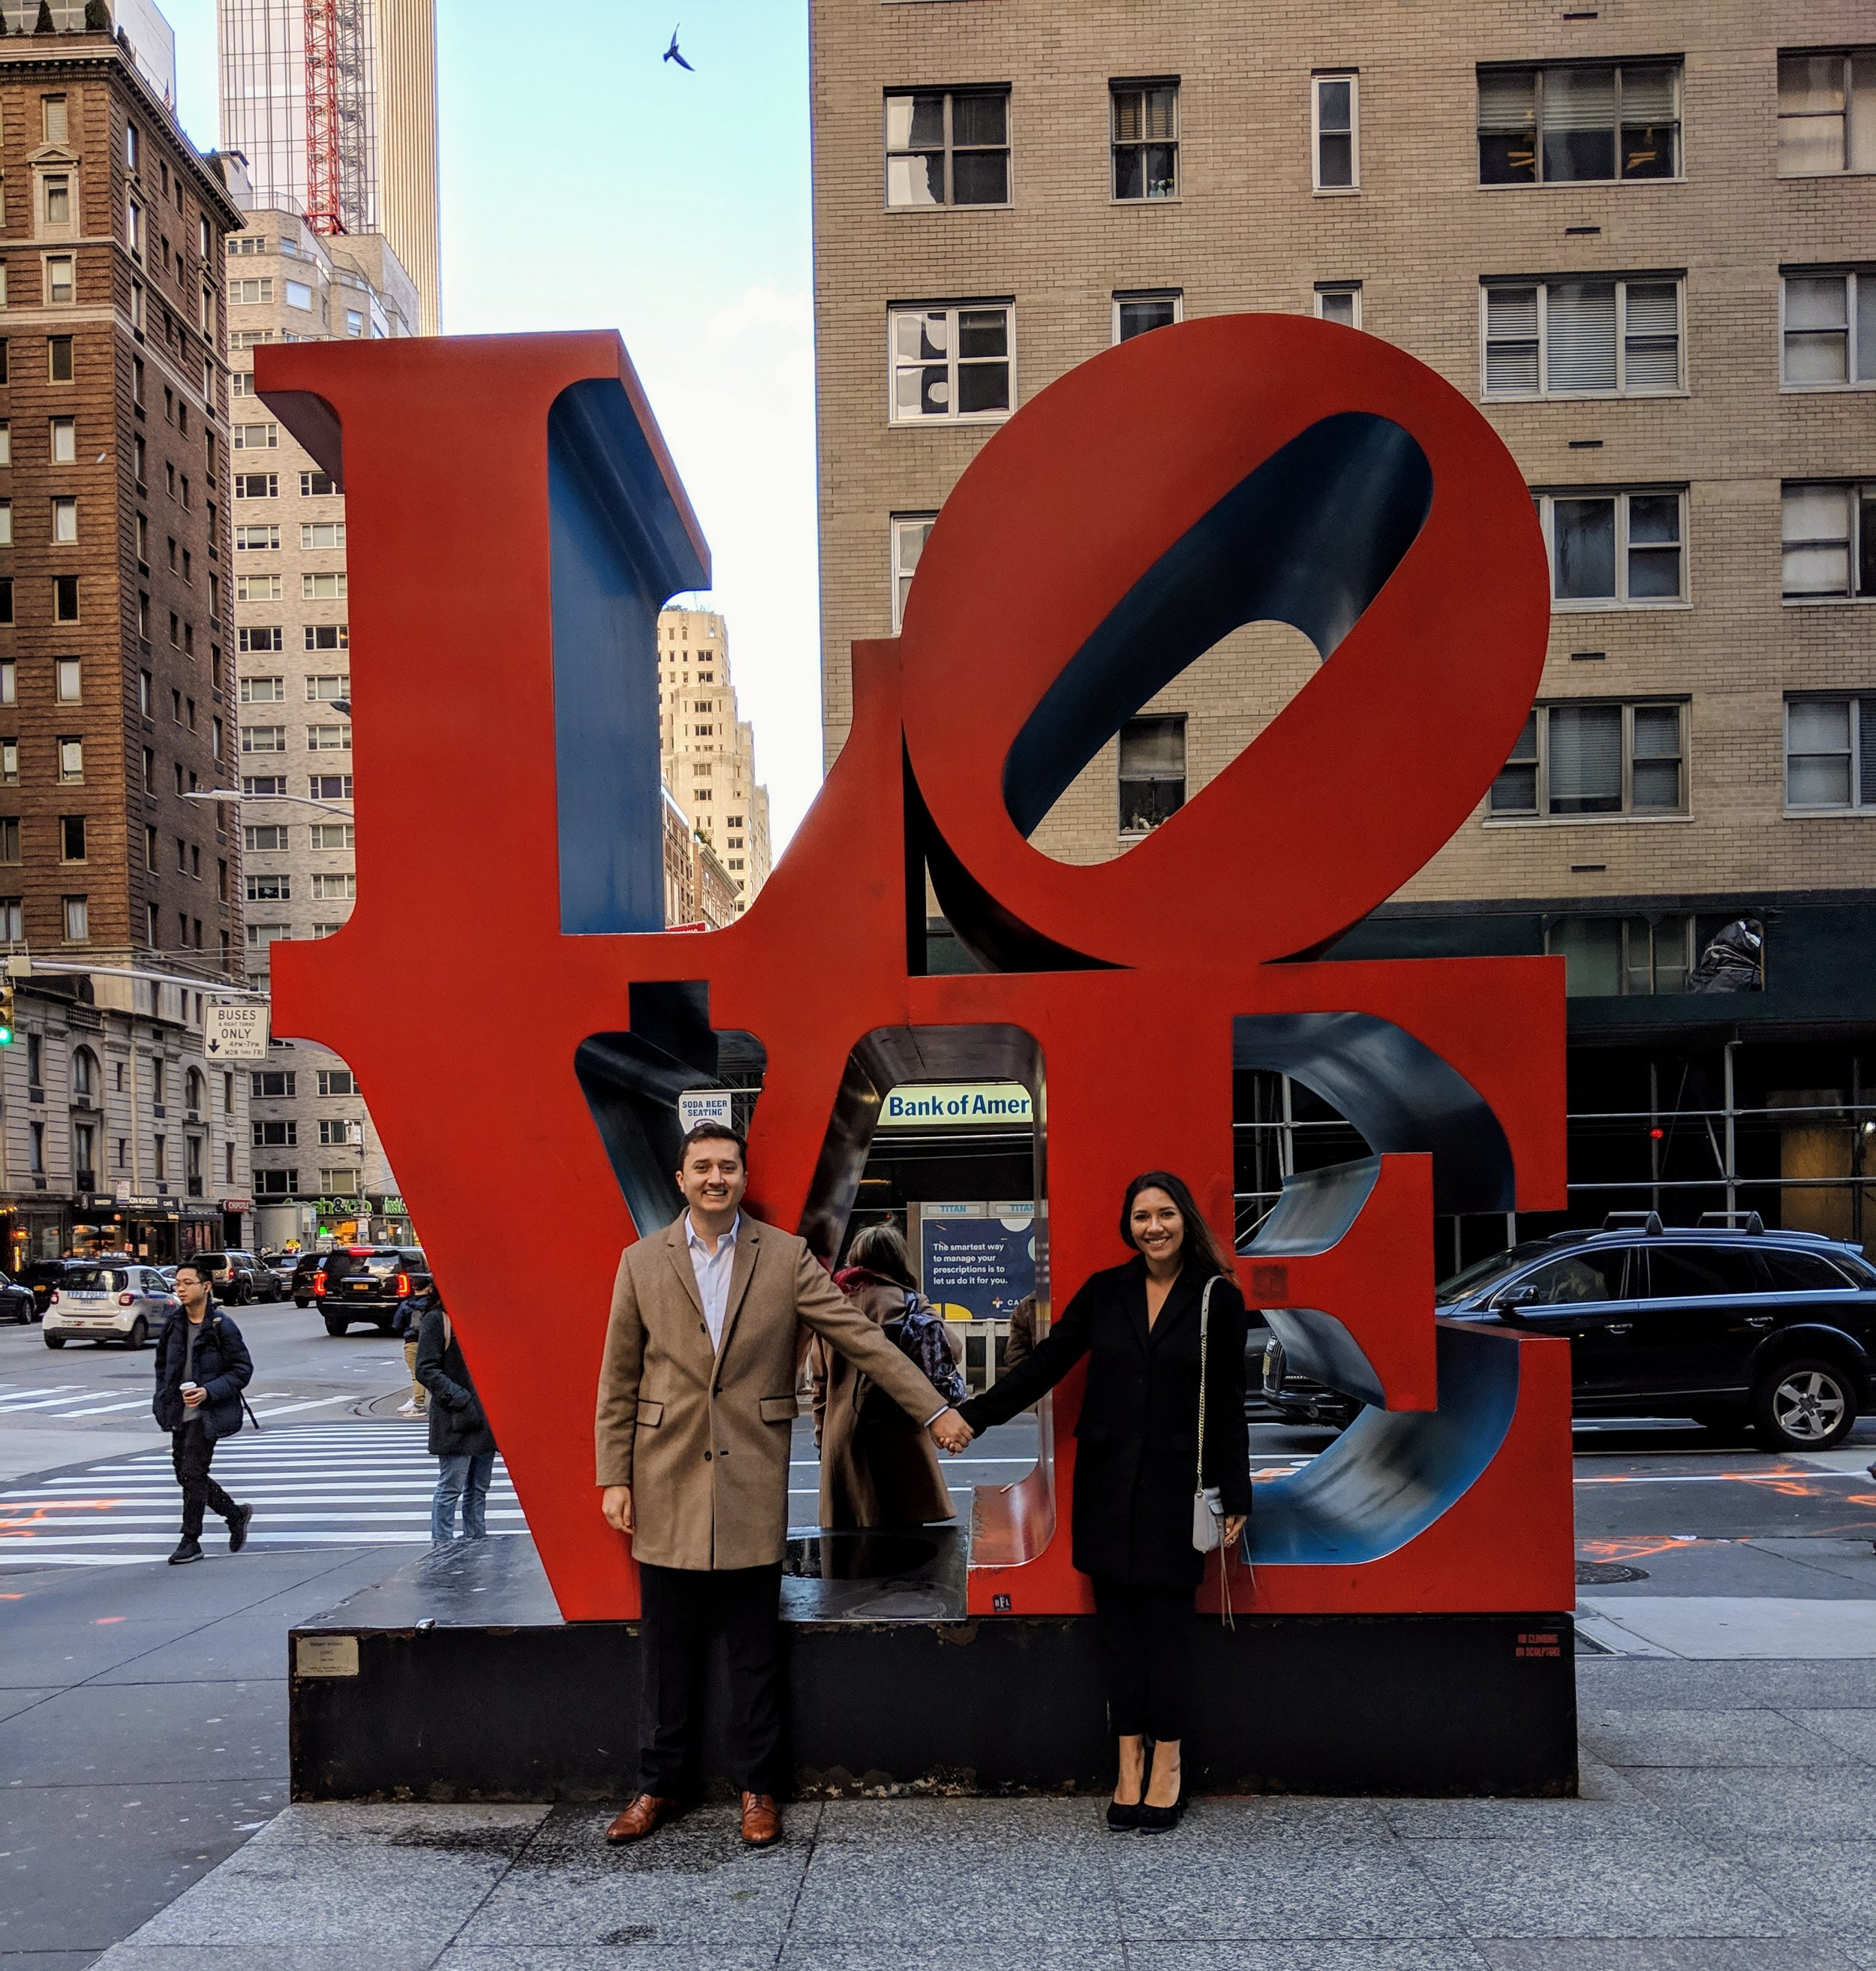 LOVE Sculpture  - tbh it was a tad anti-climactic